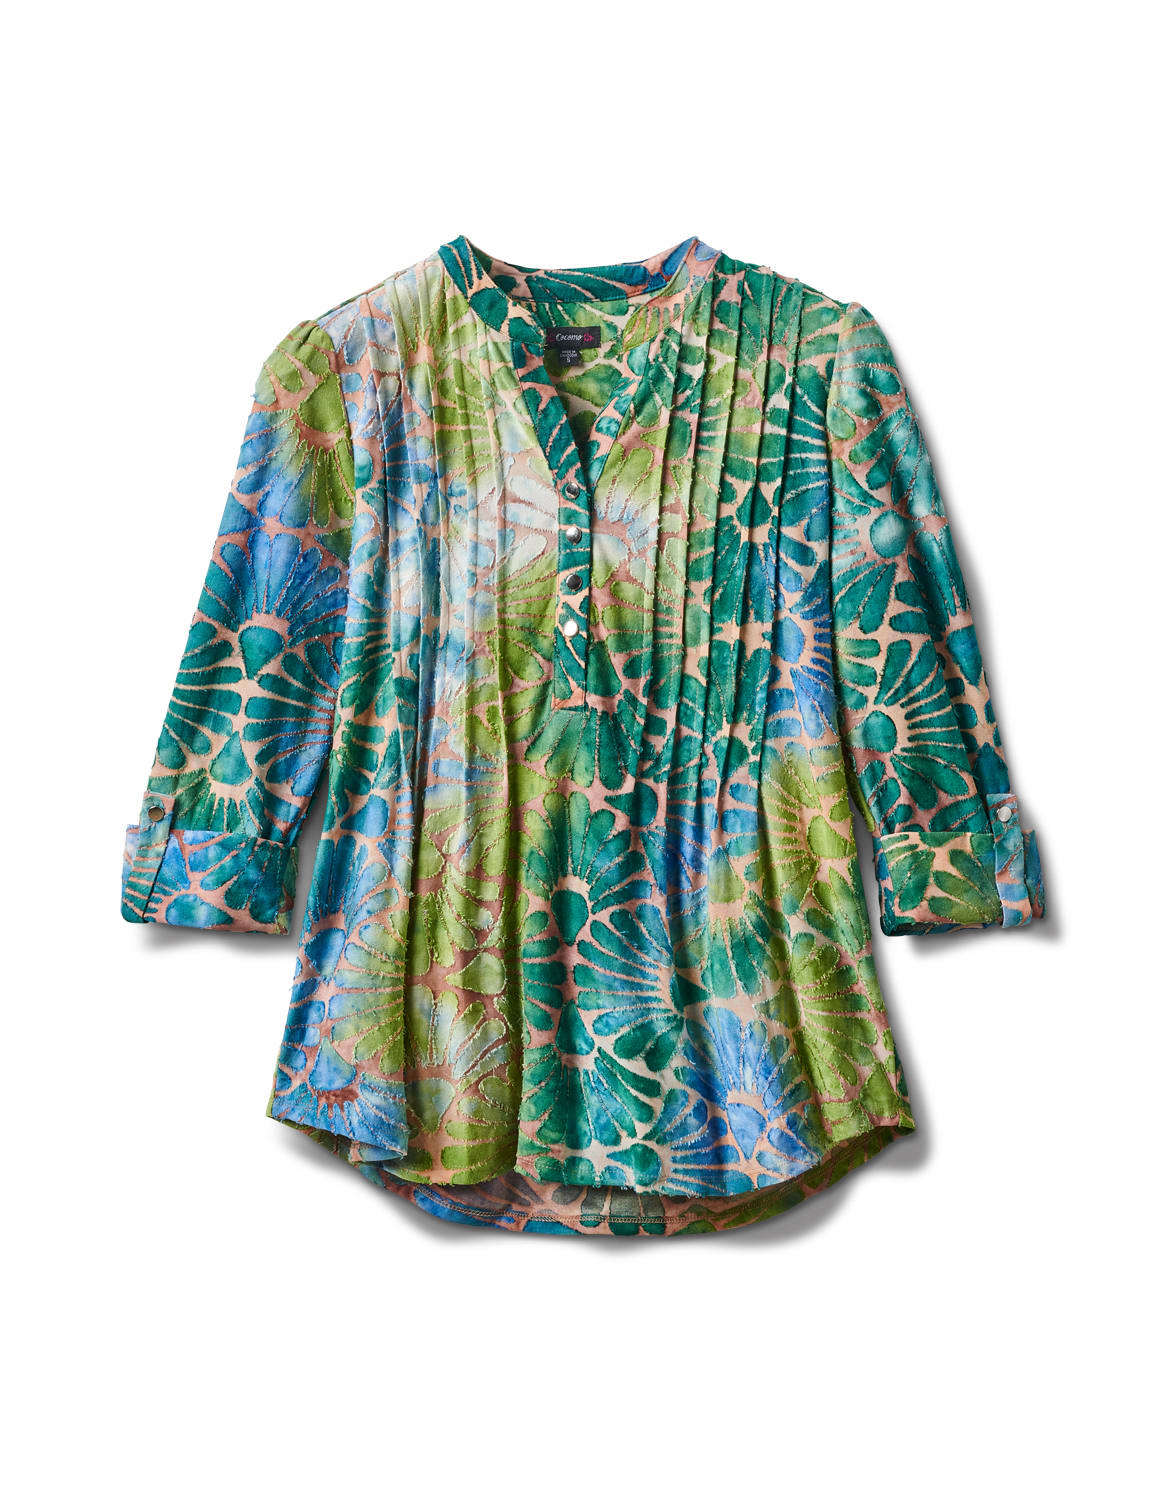 Tie Dye Clip Jaquard Popover Knit Top - Blue/Green - Front